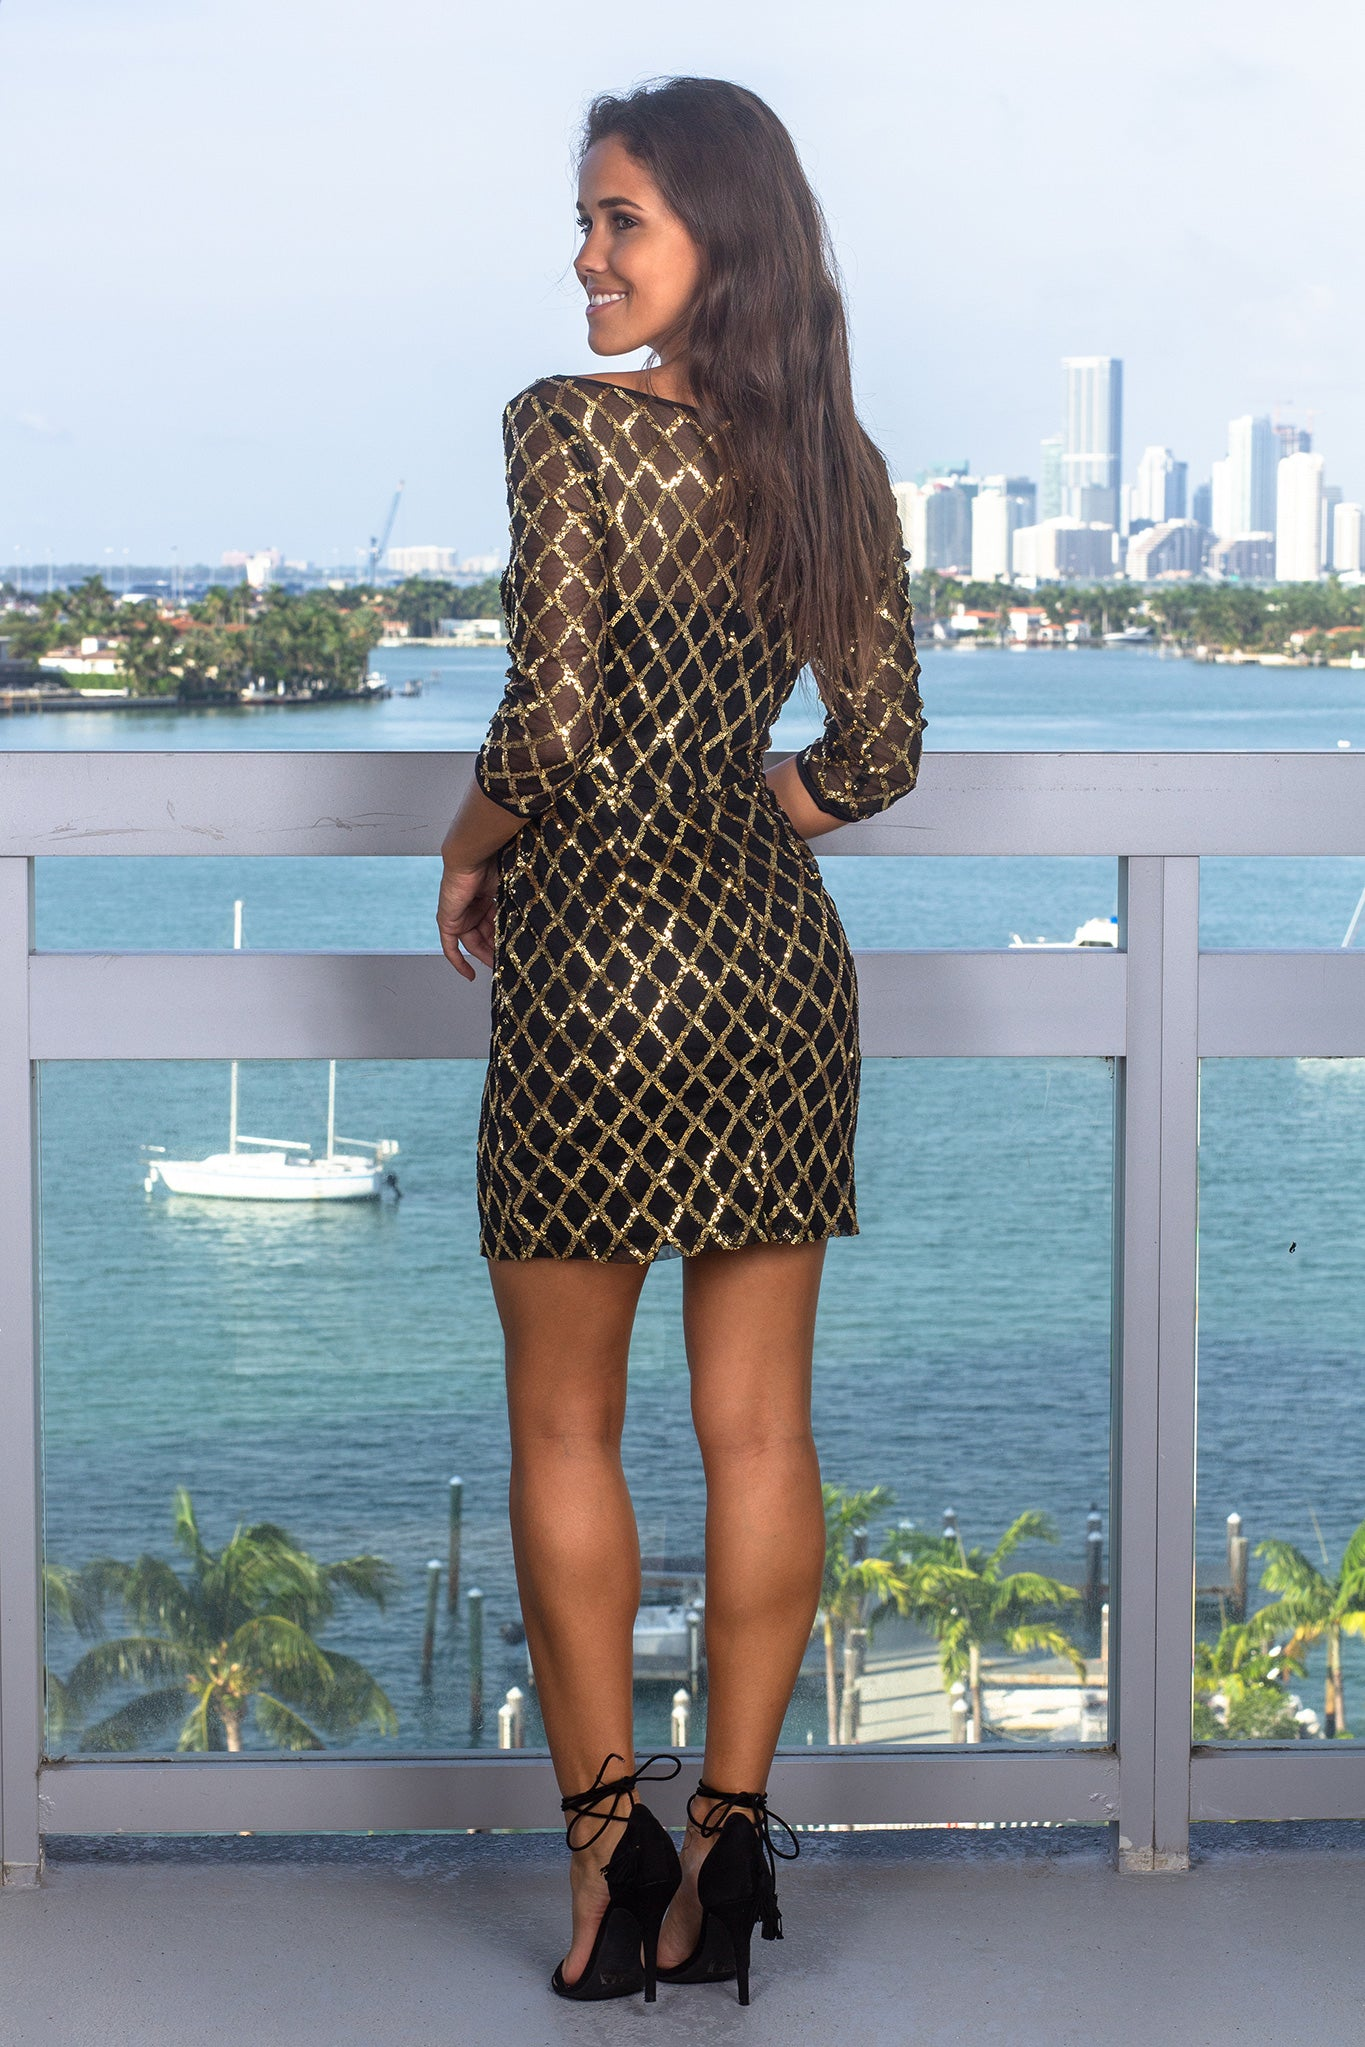 Black Sequin Short Dress with Gold Sequins